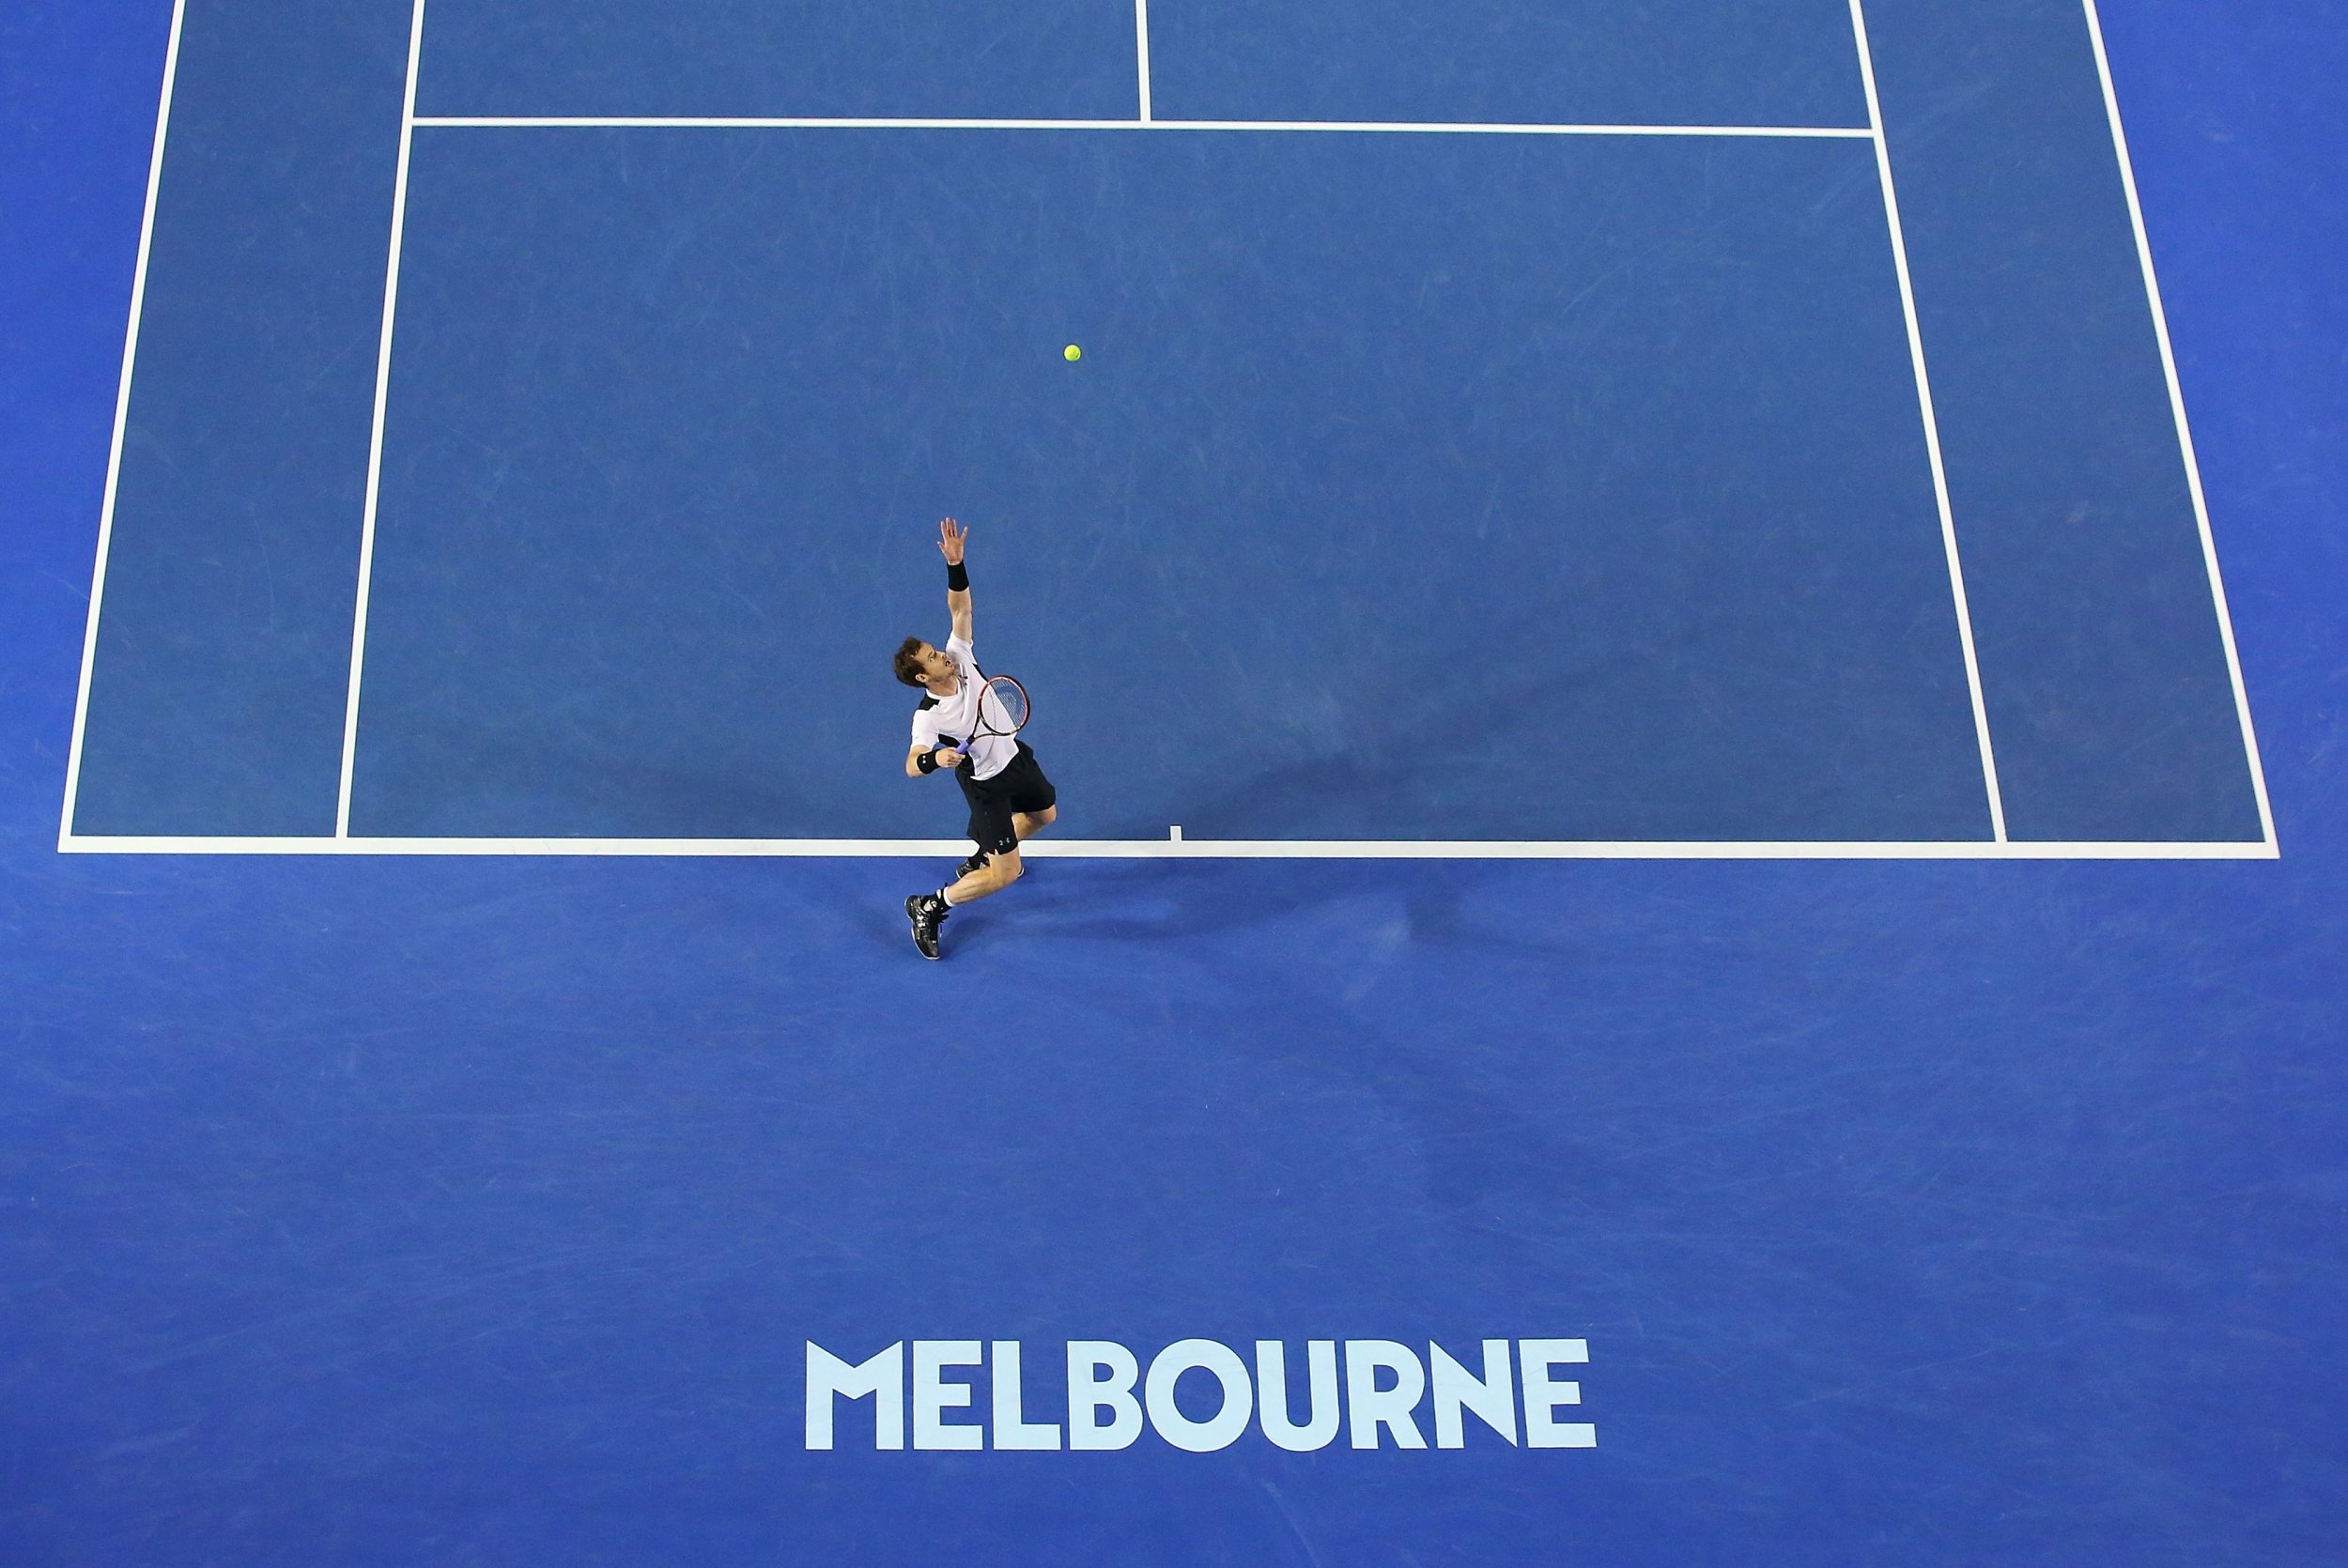 Australian Open 2016 Where To Watch Andy Murray Vs Novak Djokovic Preview And Live Streaming Information